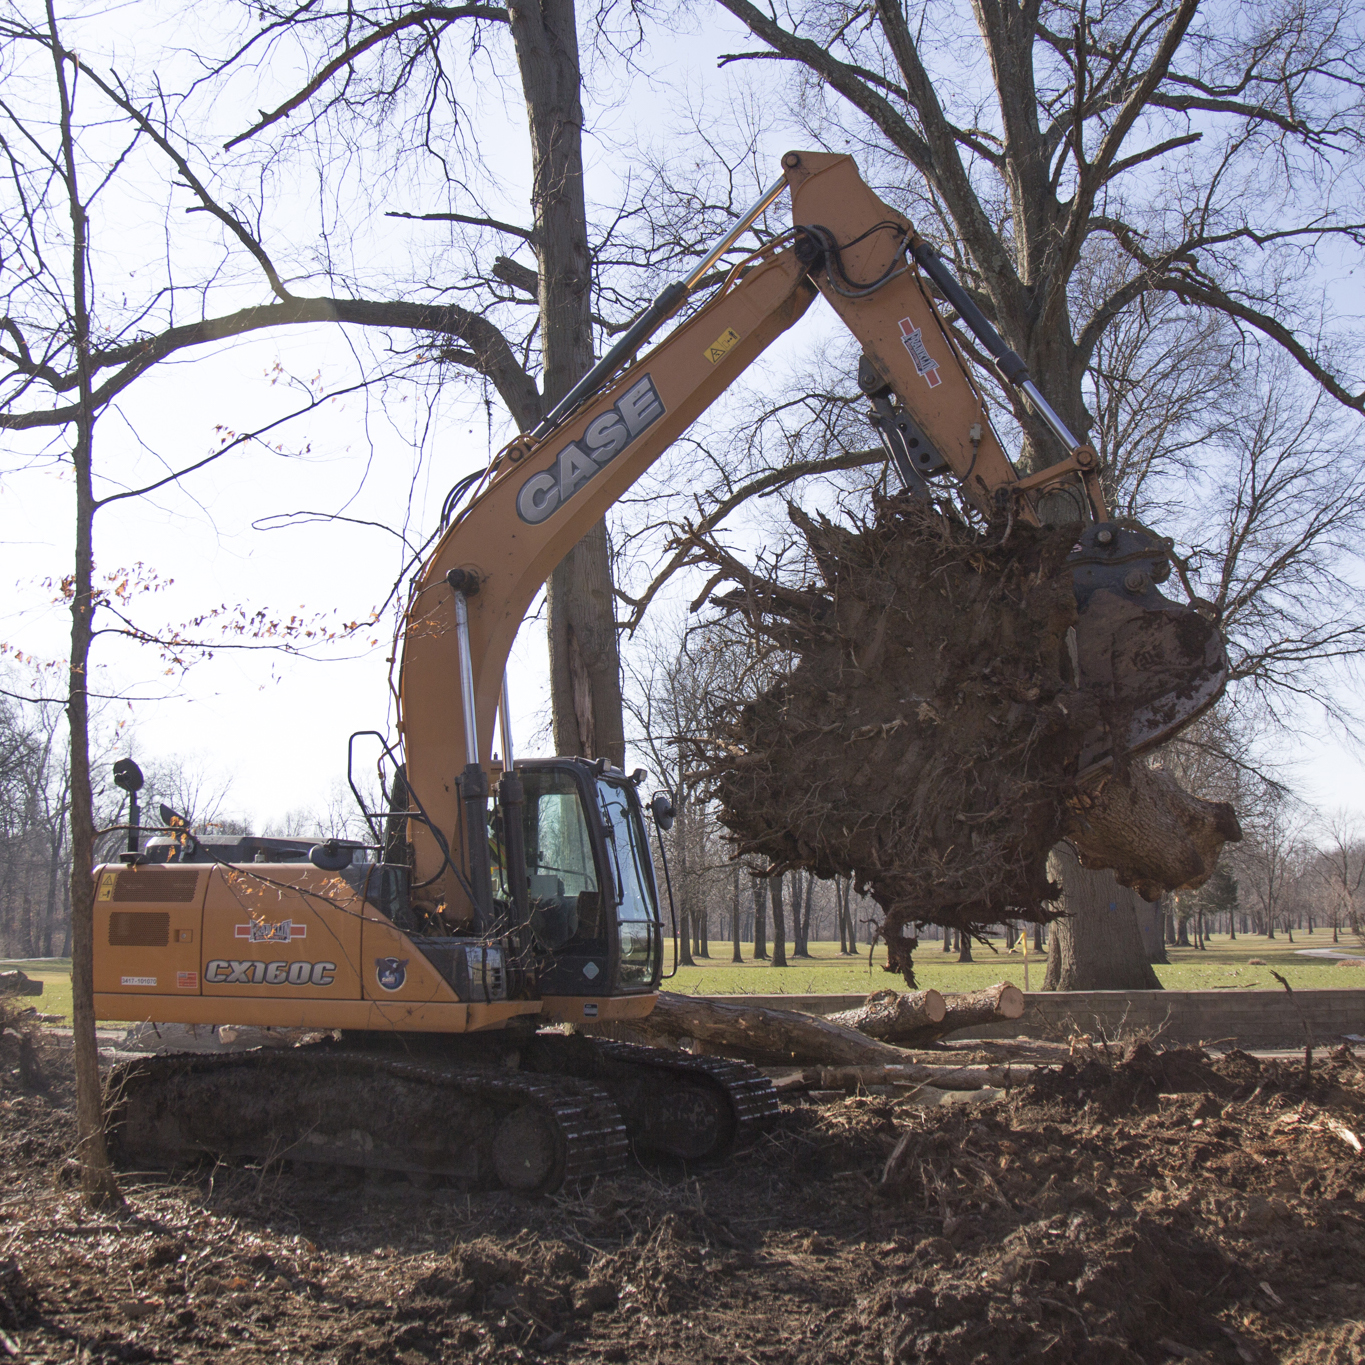 Excavators - Used for grubbing the ground to prepare for construction